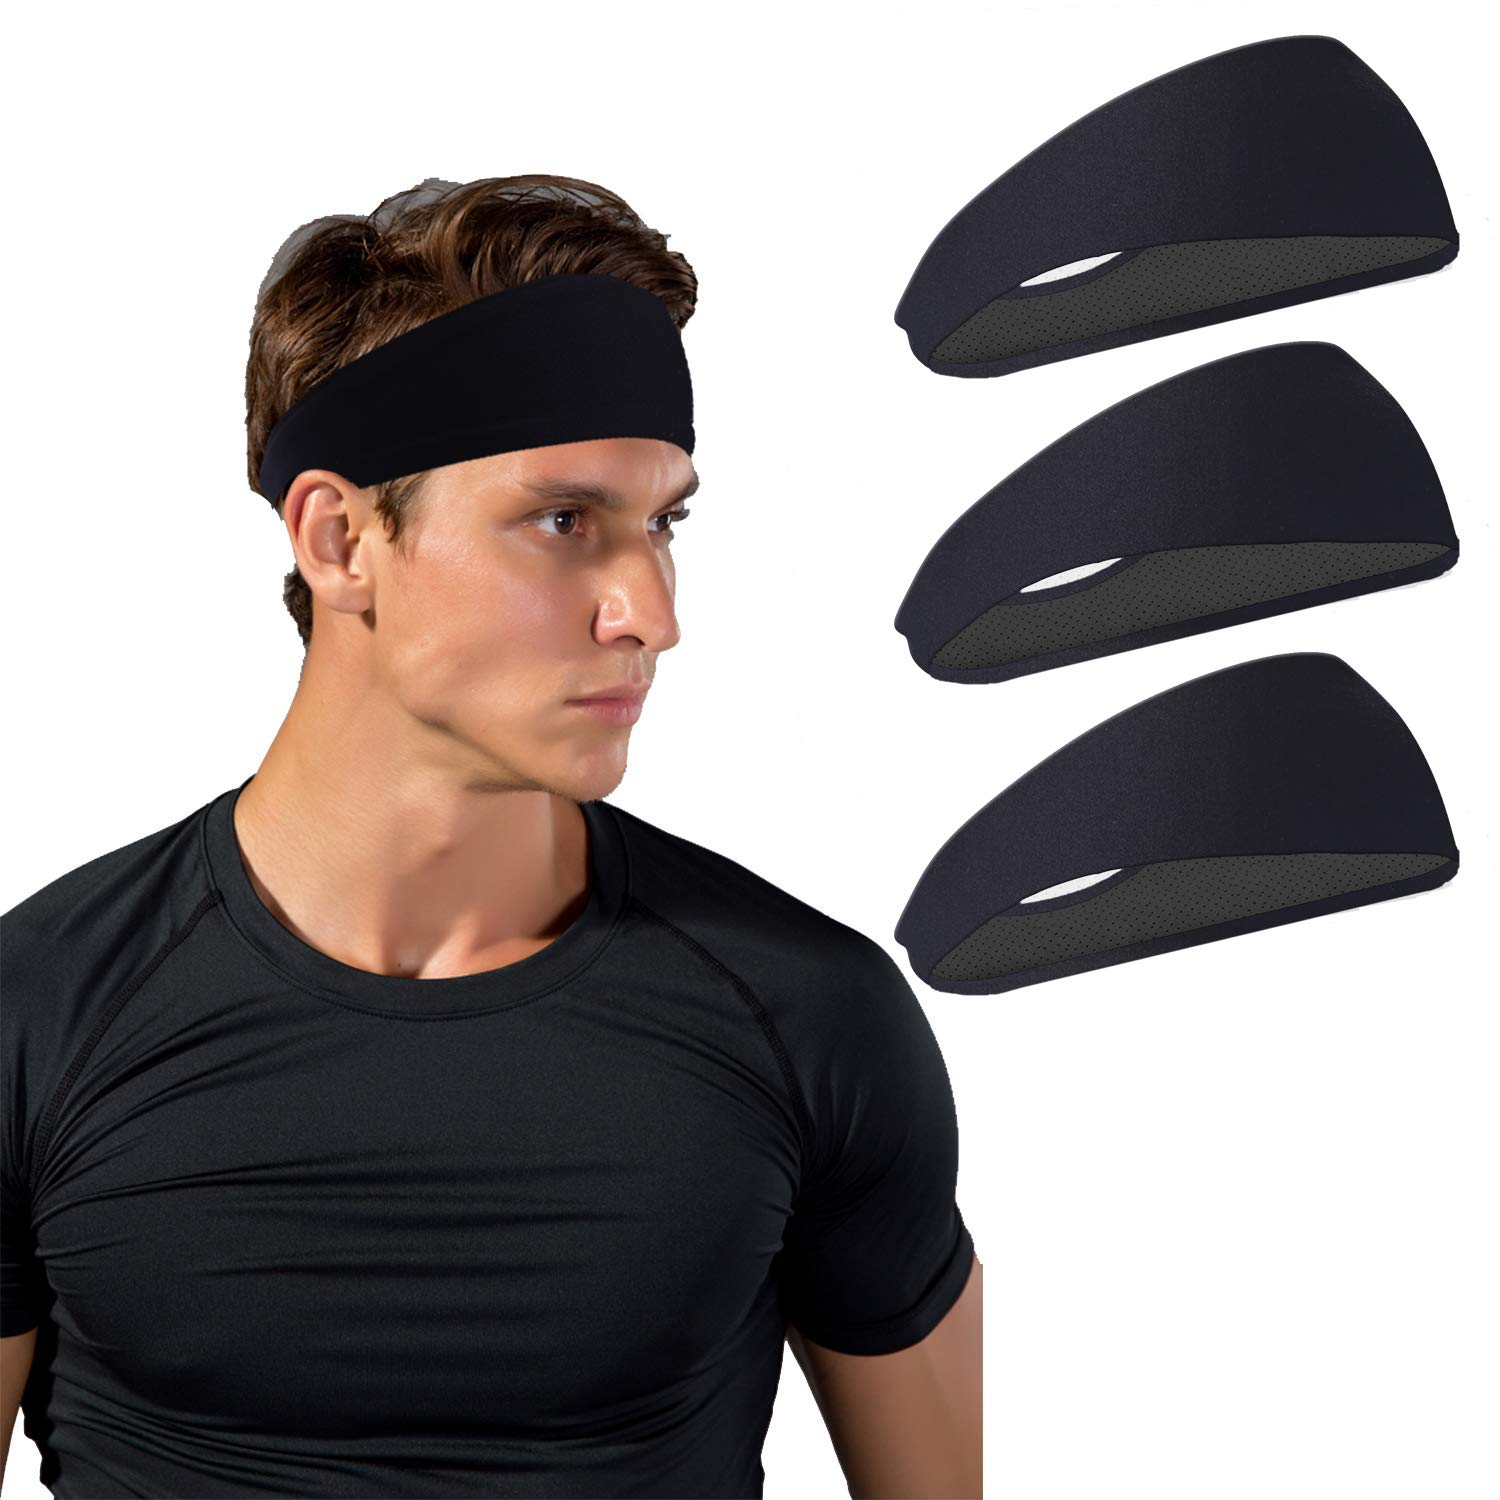 JOEYOUNG Sport Headbands for Men and Women - Mens Headband, Workout Sweatband Headband for Running, Yoga, Fitness, Gym - Performance Stretch/Lightweight